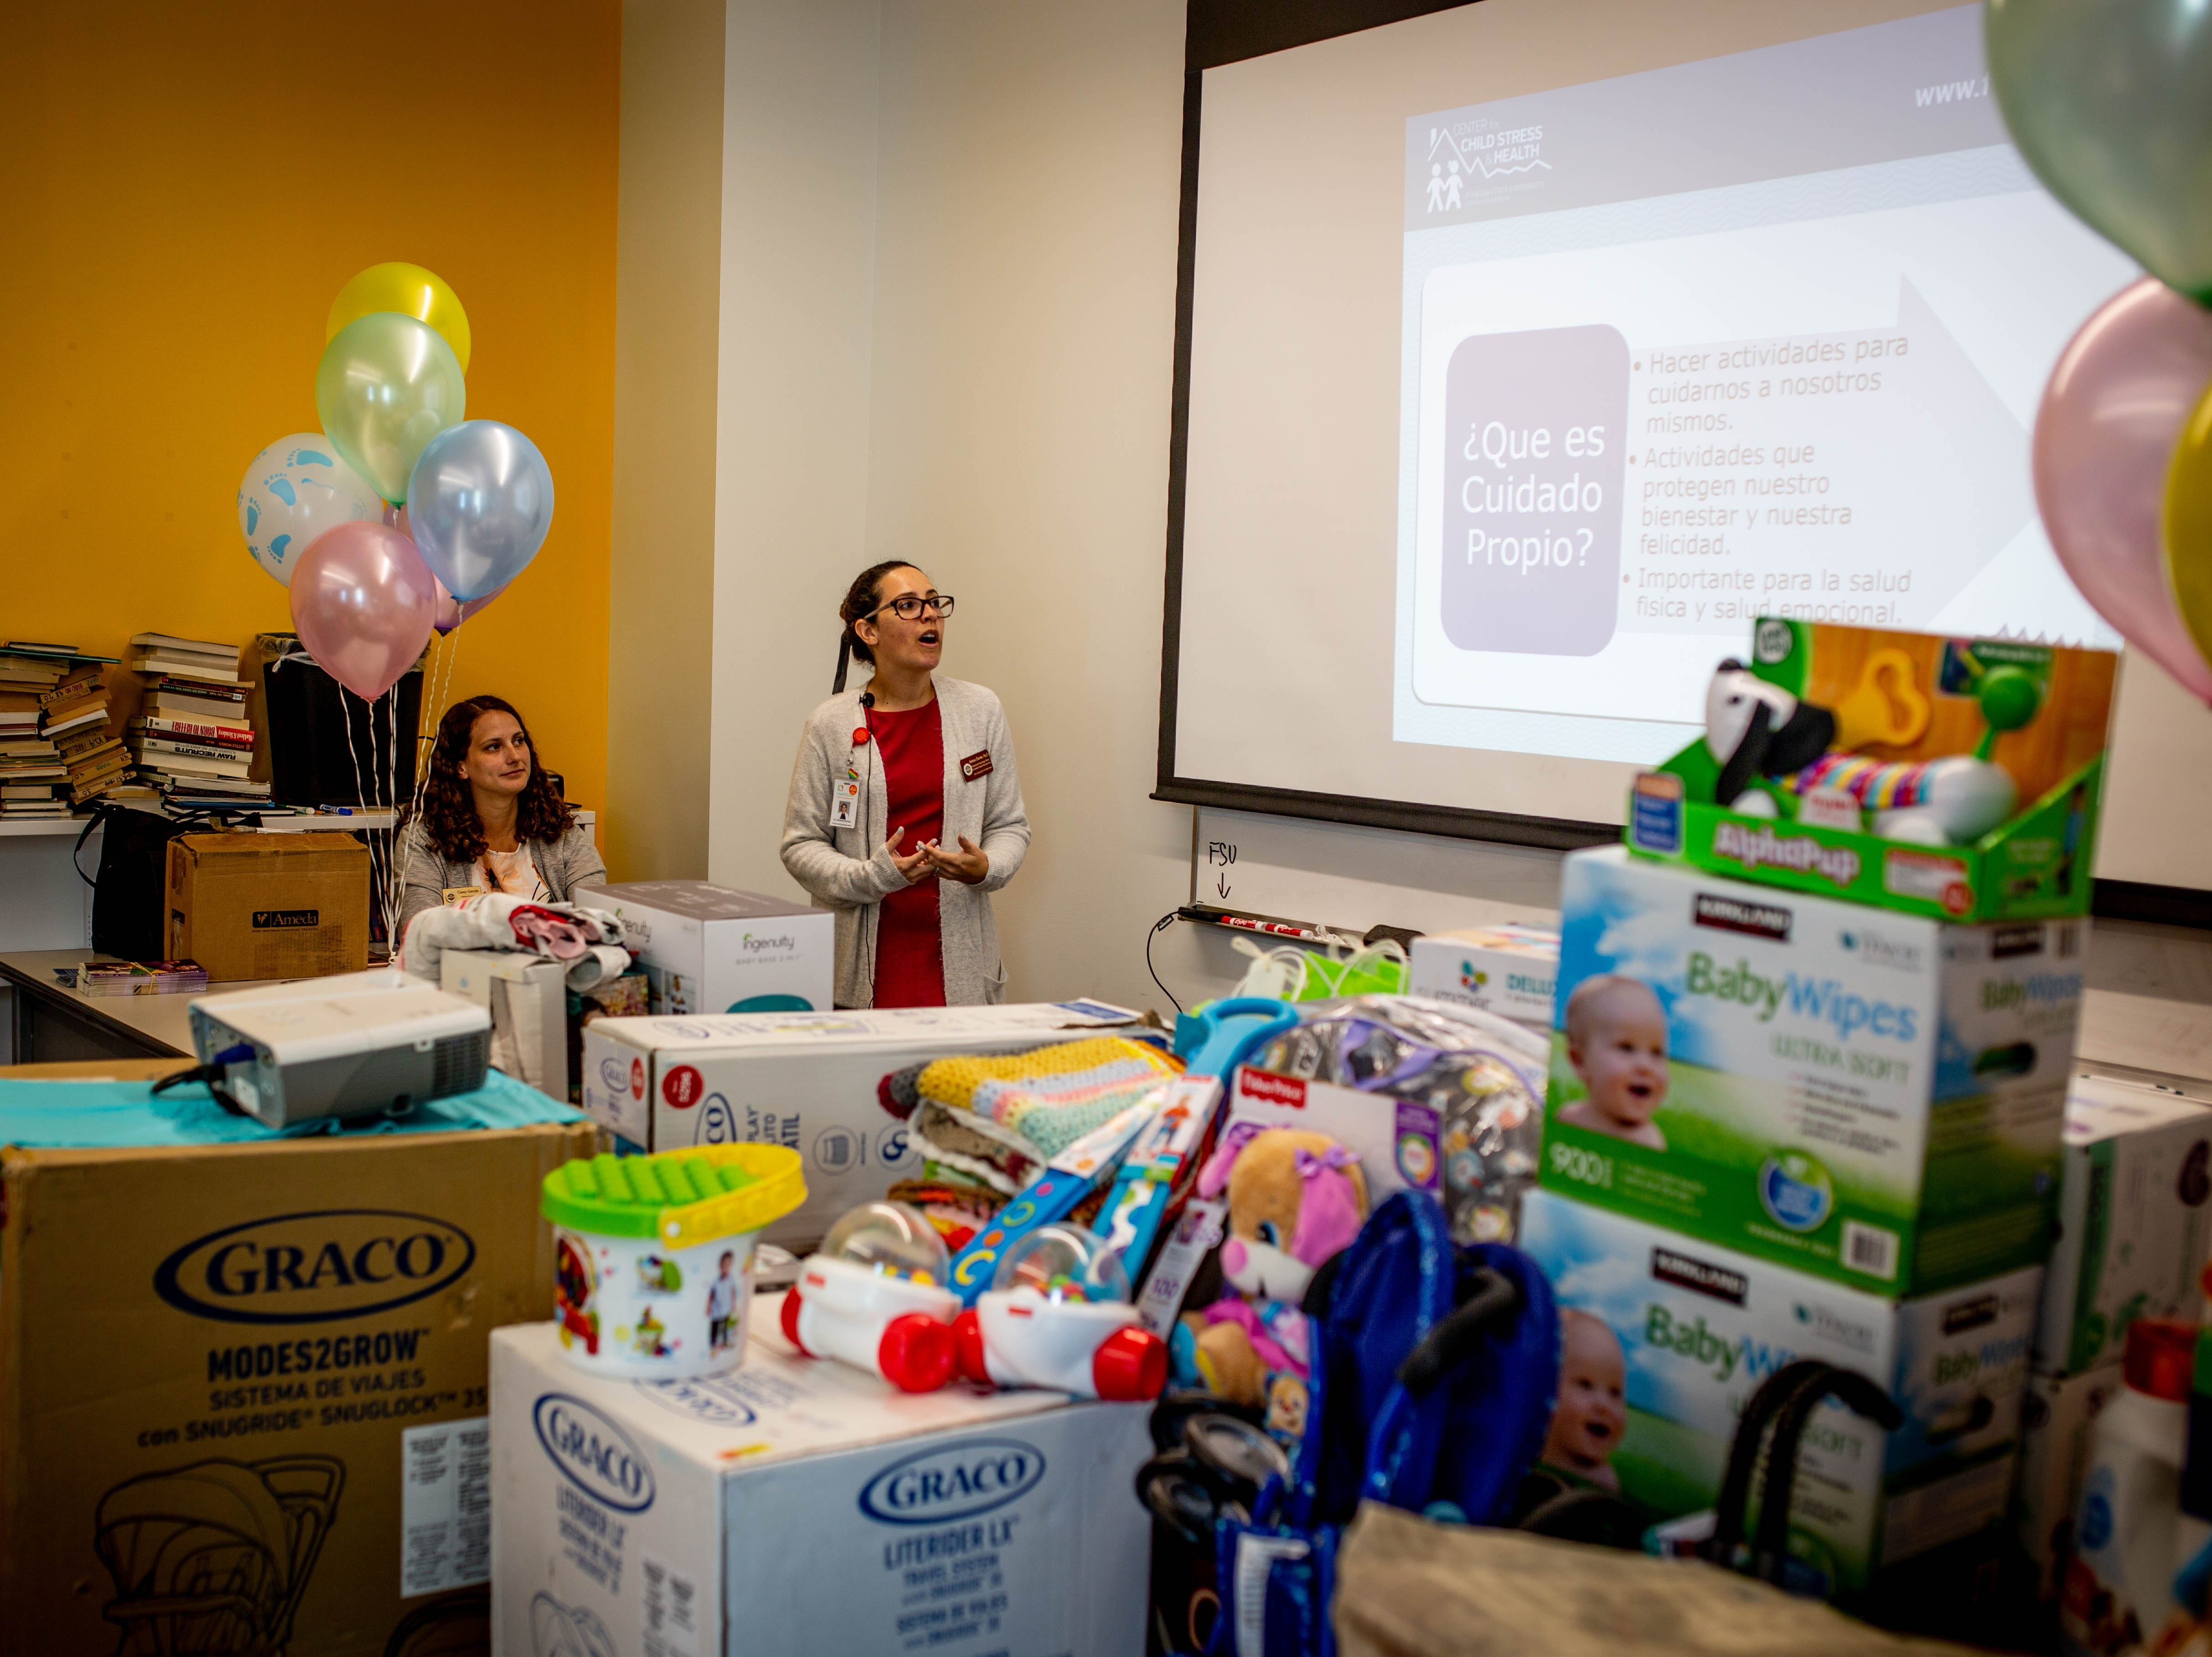 Dr. Adriana Ziemba gives a presentation at the Immokalee Community Baby Shower at the Boys & Girls Club in Immokalee on Thursday, May 9, 2019. Presentations on prenatal and postnatal care were given in both Spanish and English.